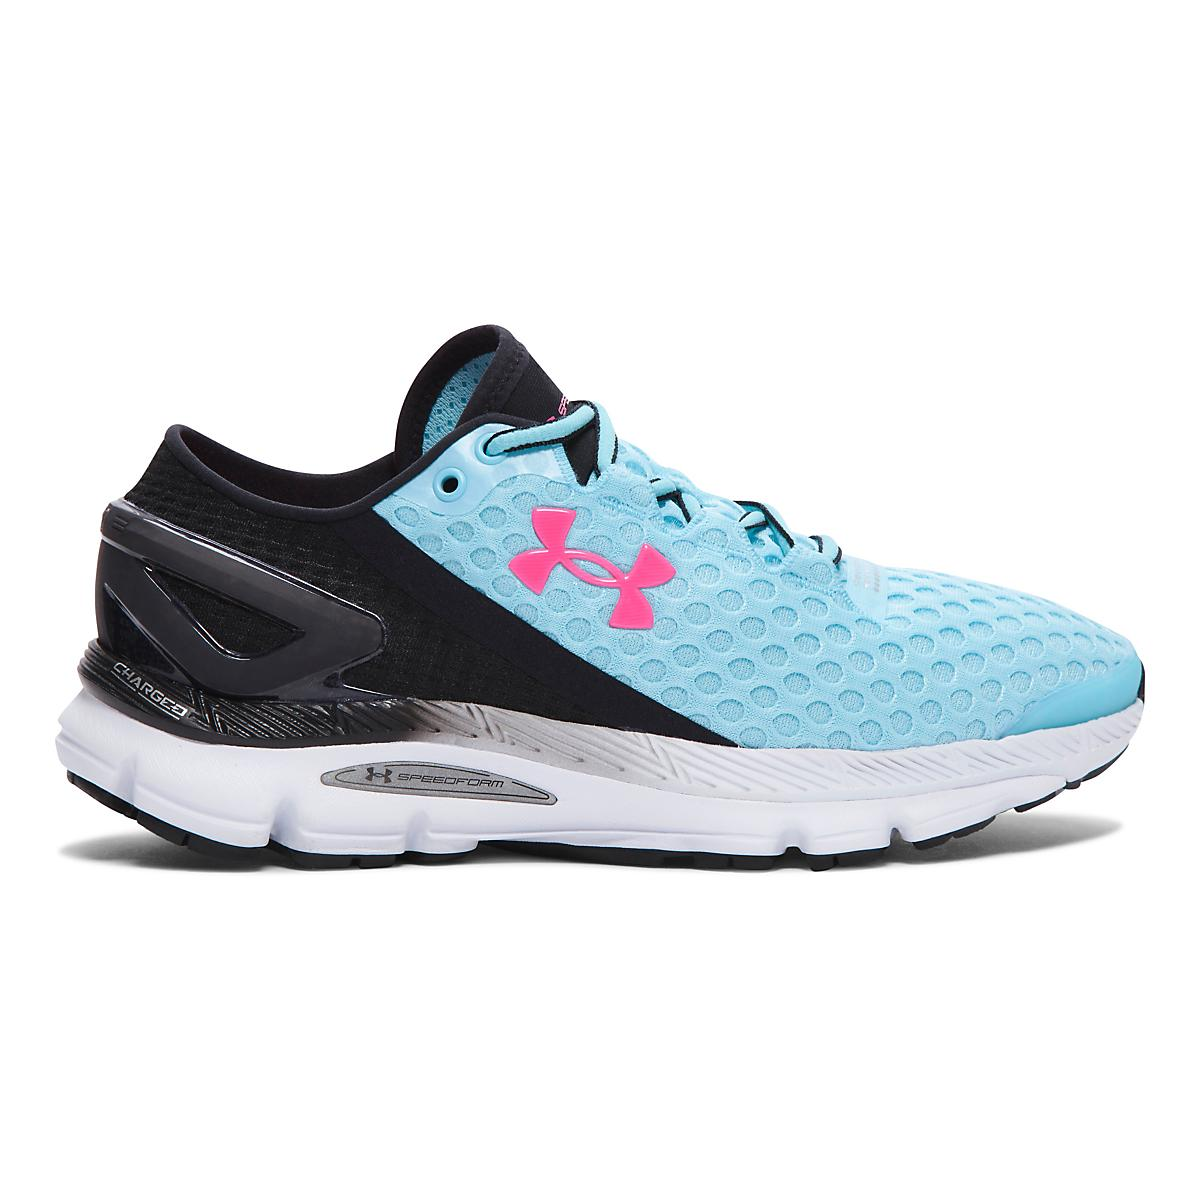 Womens Under Armour Speedform Gemini 2 Running Shoe at Road Runner Sports 6b4e5b731